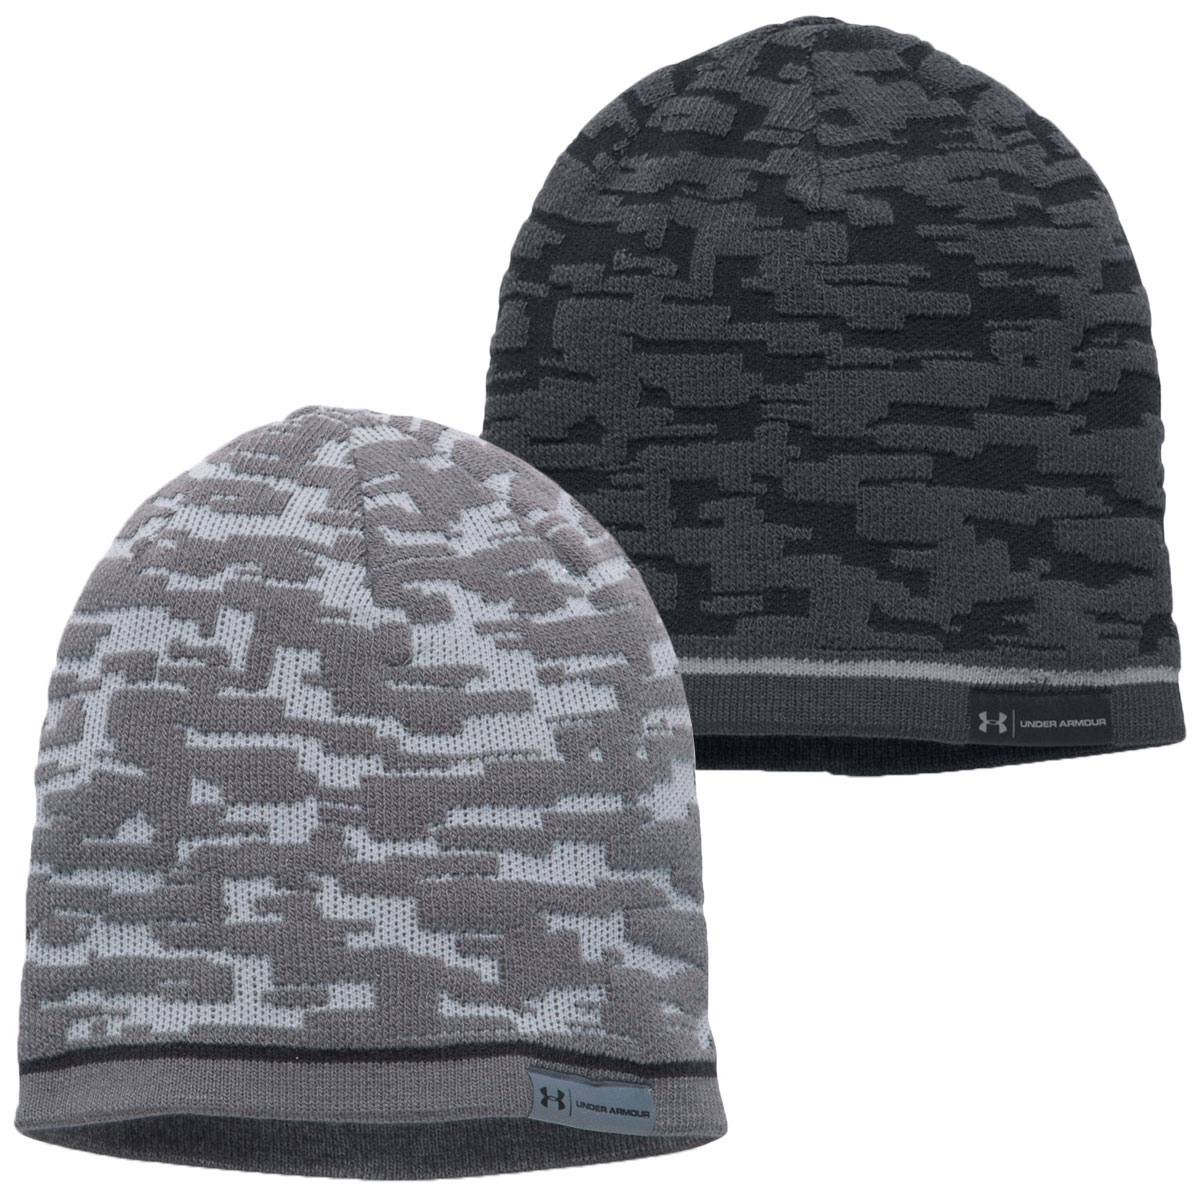 Details about Under Armour Mens UA Rev Graphic Beanie Winter Wooly Hat 3f17764807f